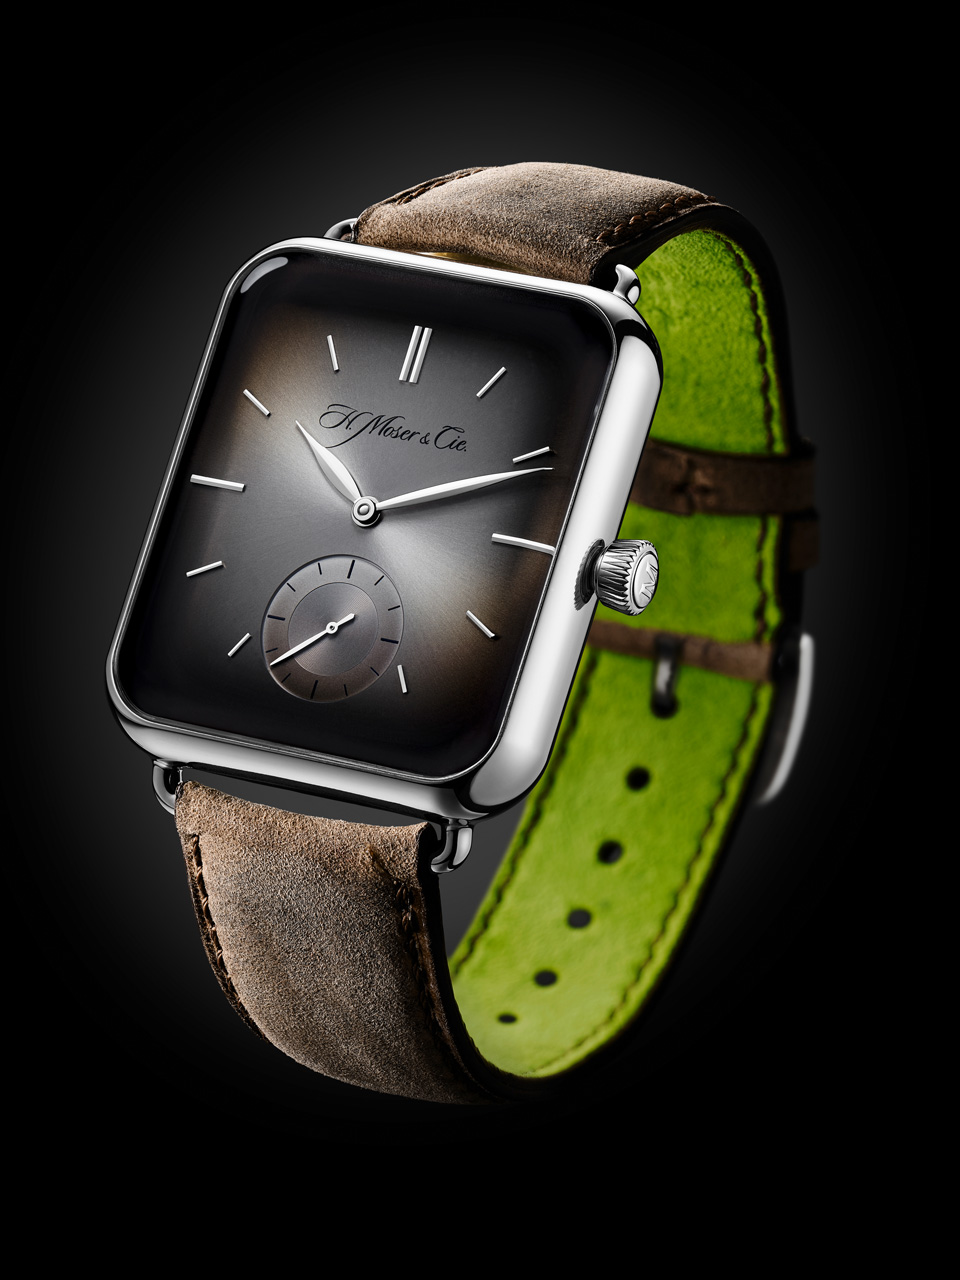 Watch Videos Music And Live Streams On The App: H. Moser & Cie. Swiss Alp Watch